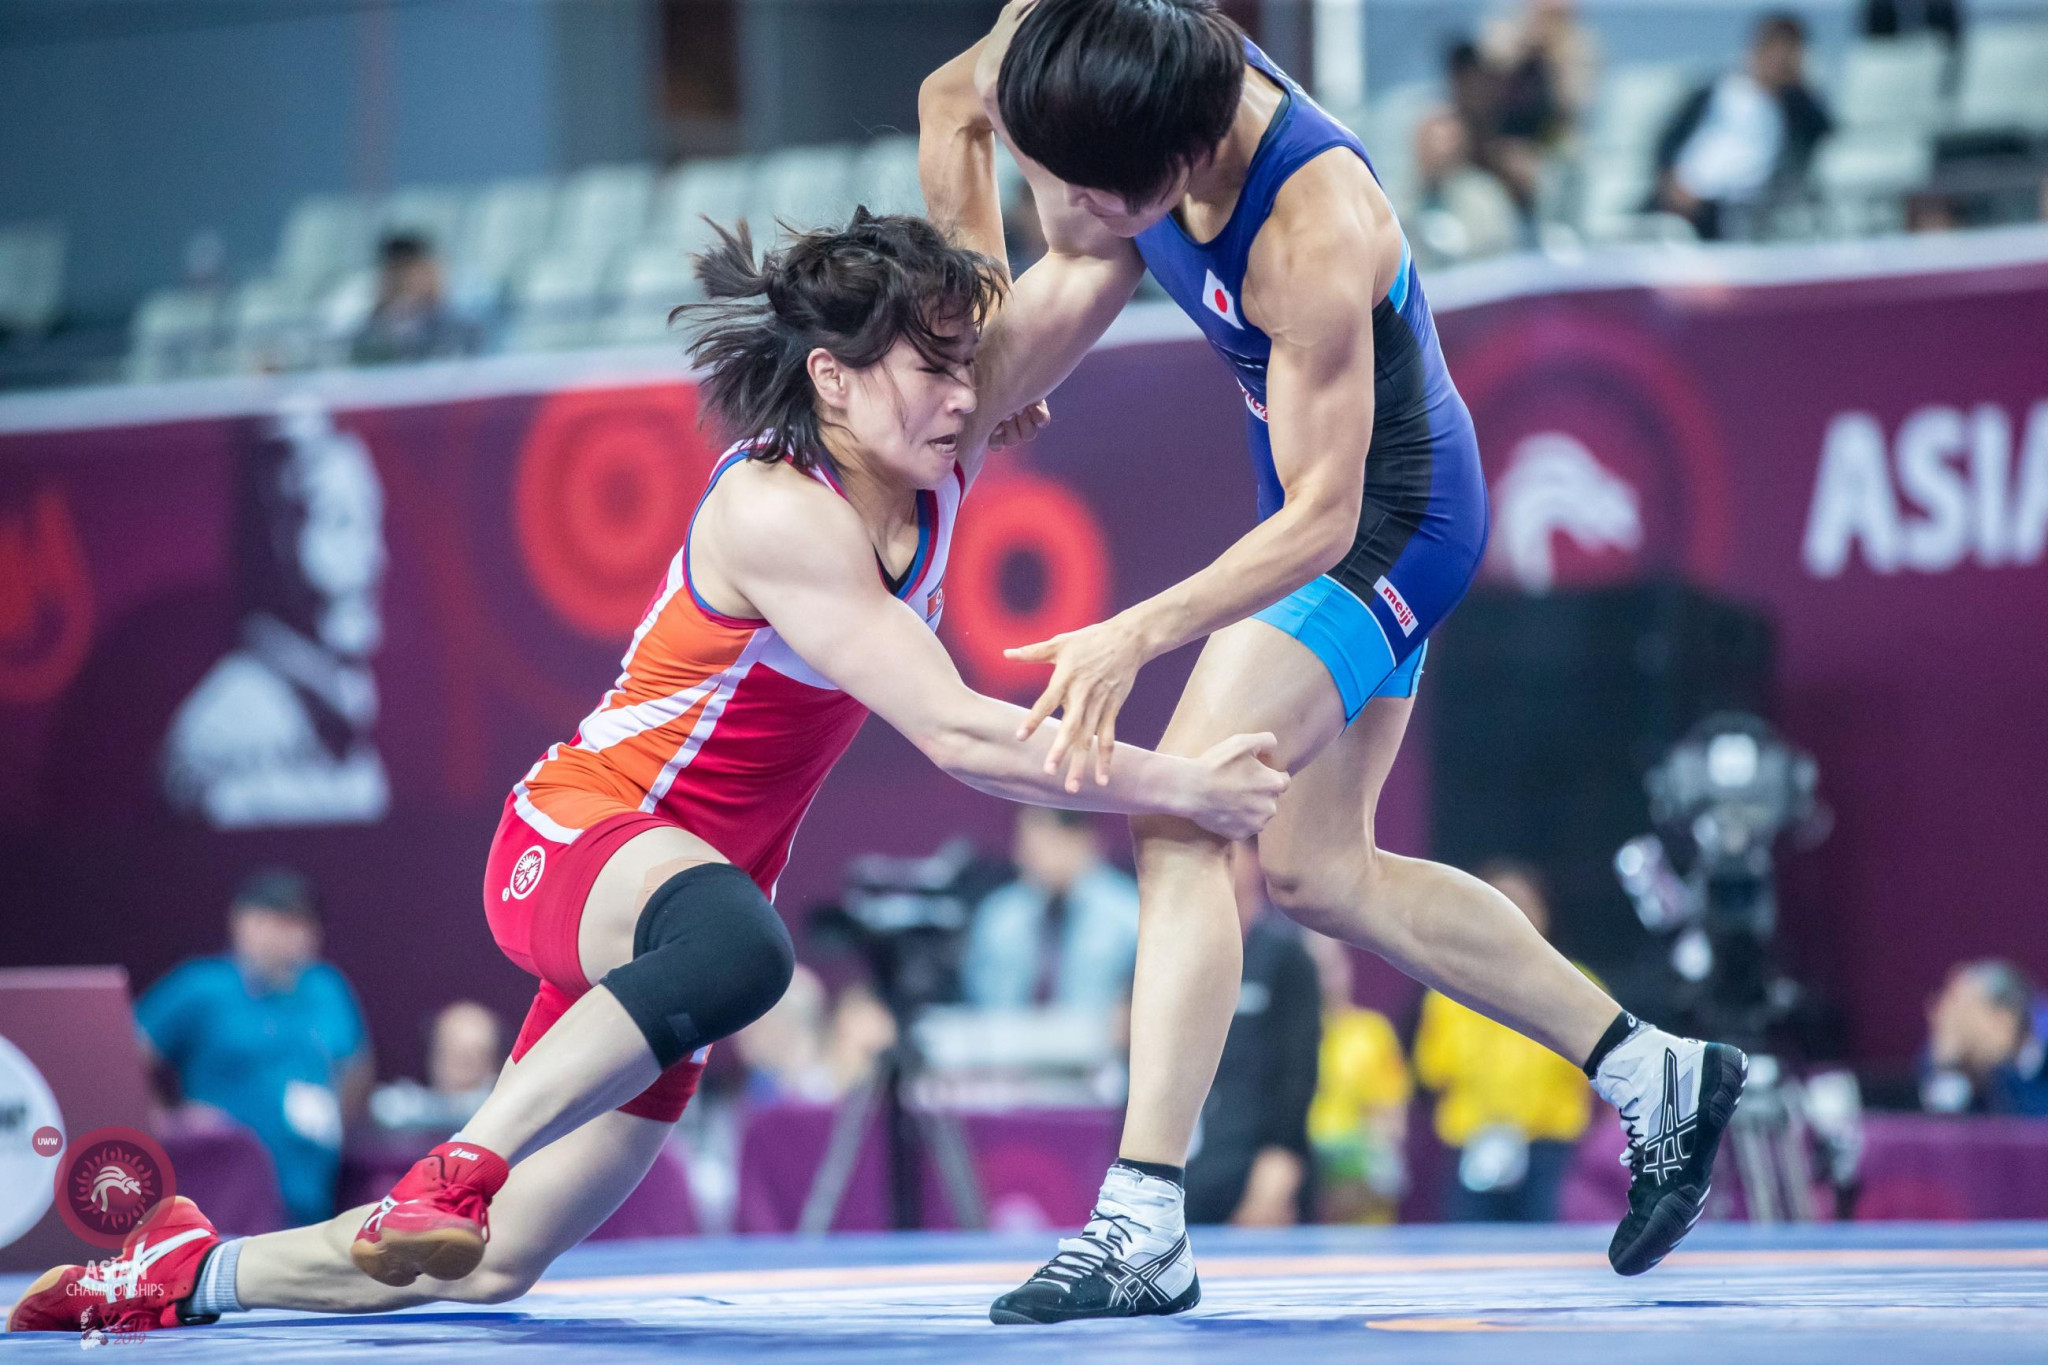 Pak retains women's 53kg title at Asian Wrestling Championships